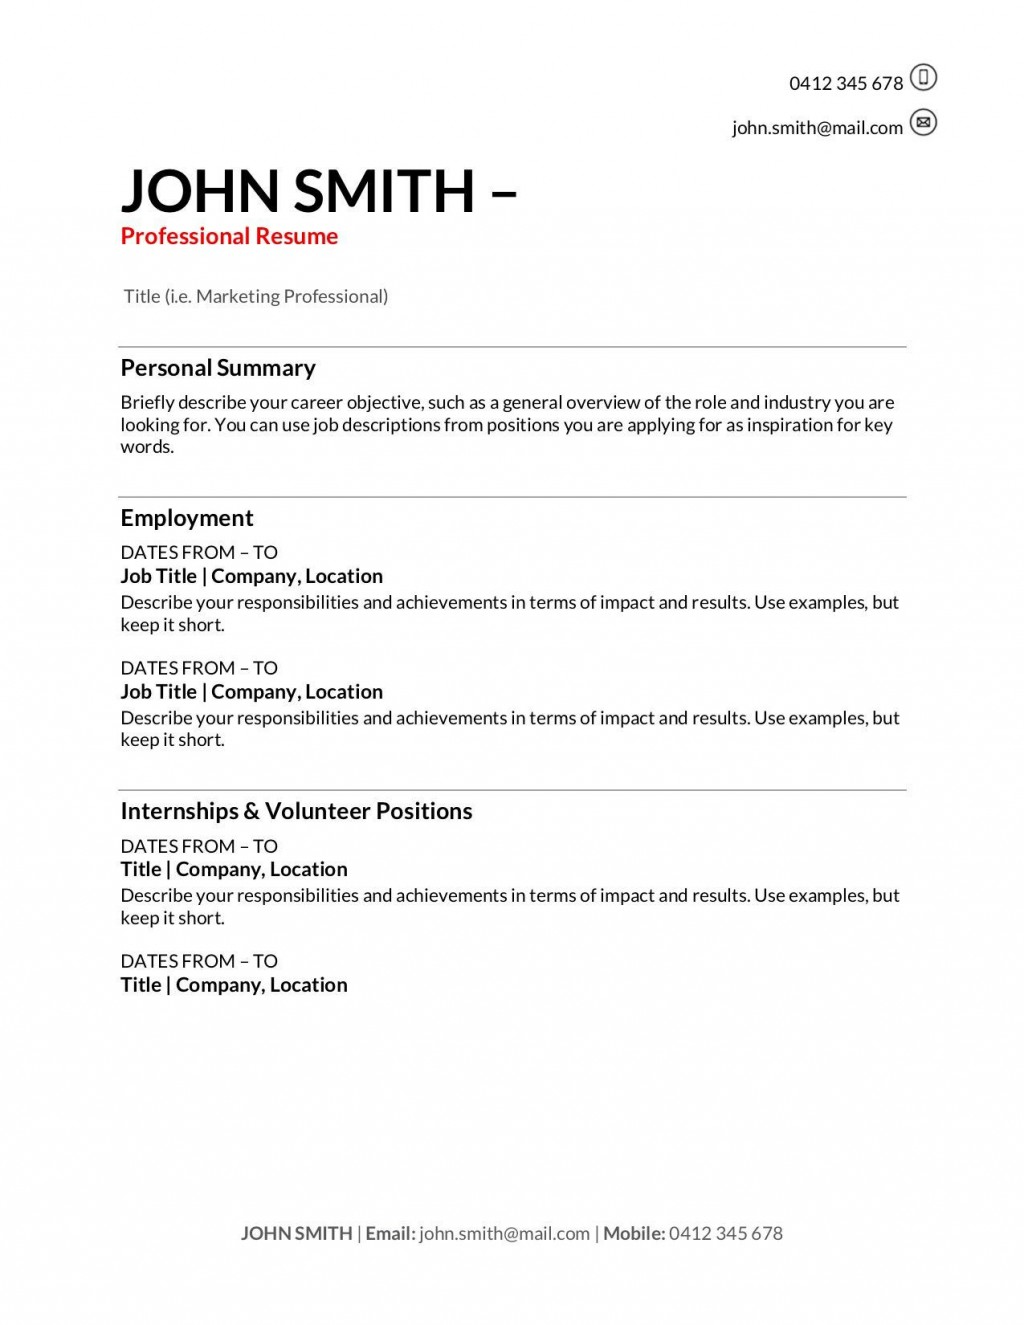 006 Impressive Resume Template For First Job High Def  Student Australia In School TeenagerLarge